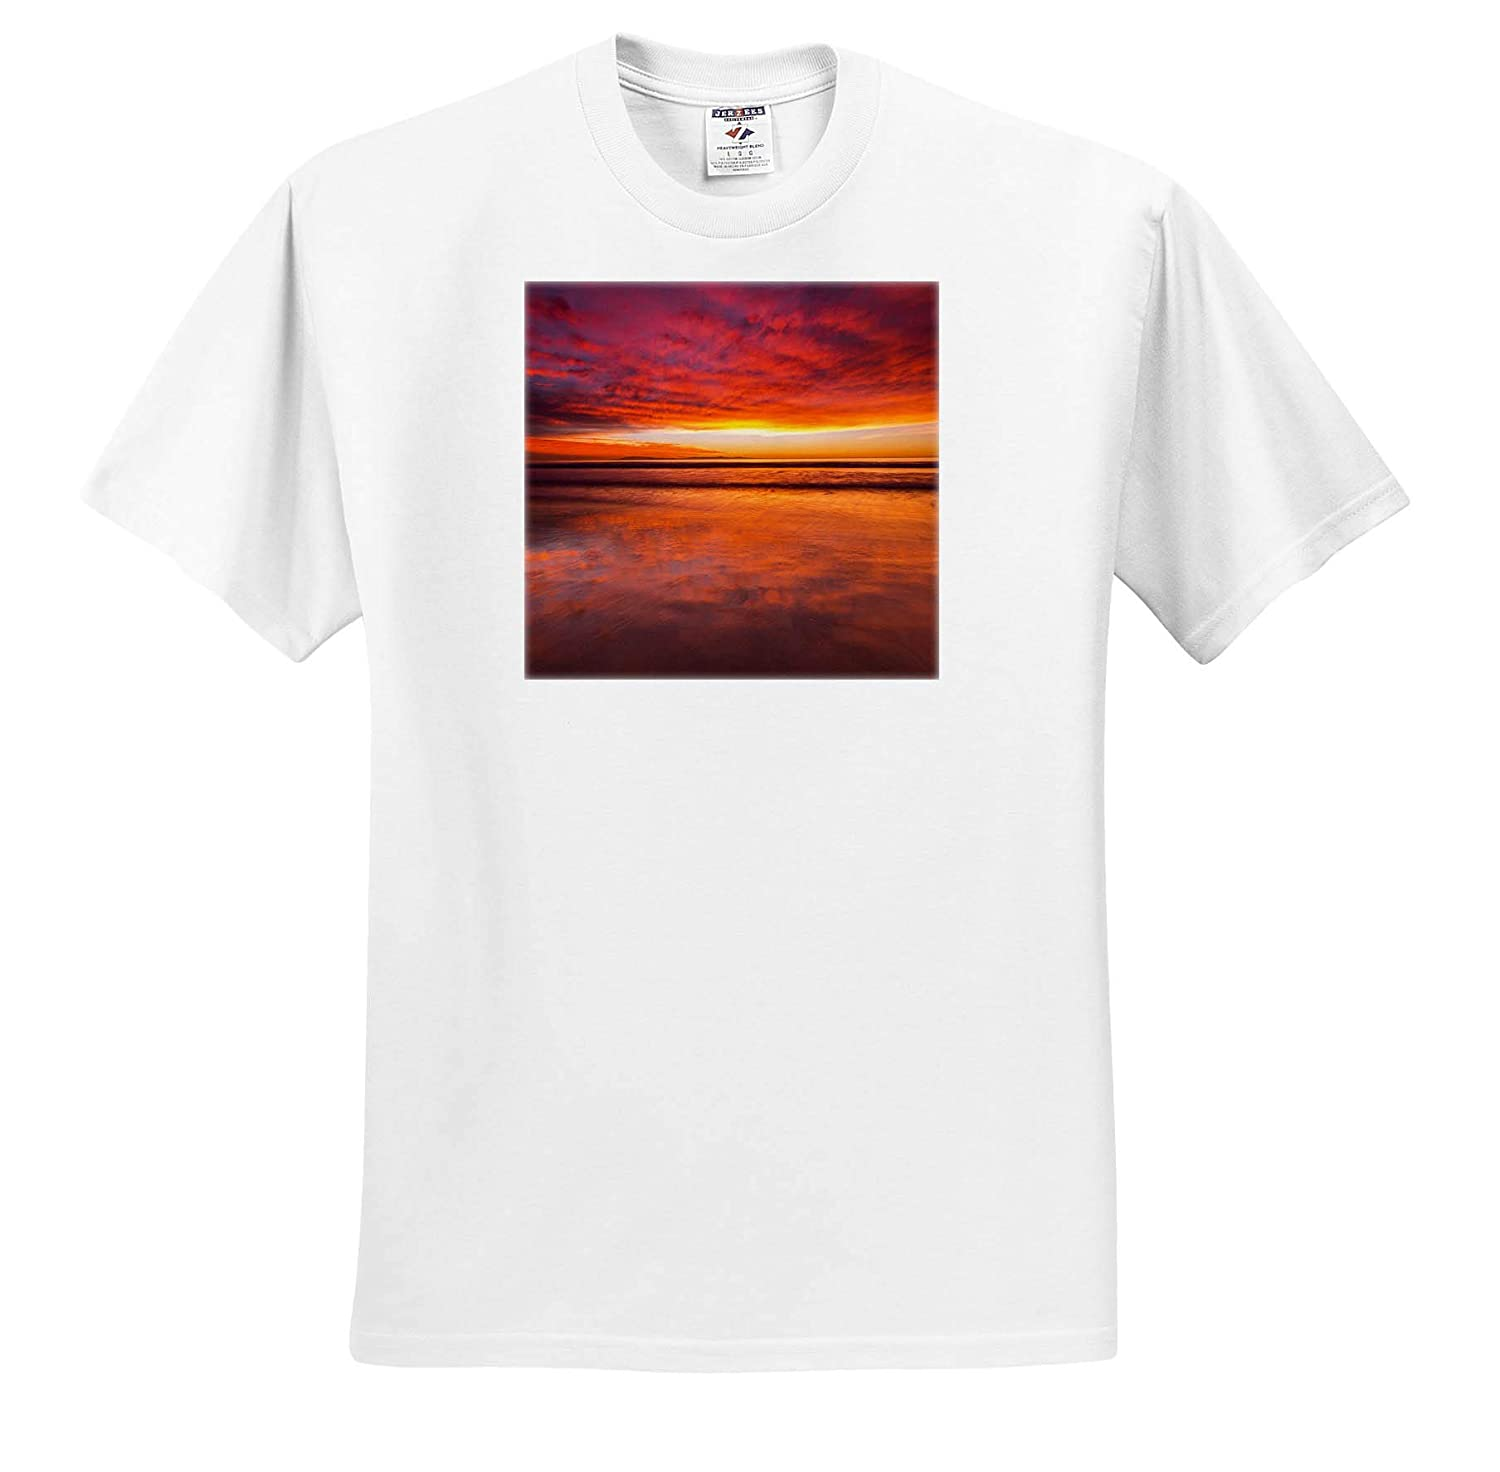 3dRose Danita Delimont Ventura Sunsets USA California Sunset from Ventura State Beach ts/_314698 Adult T-Shirt XL